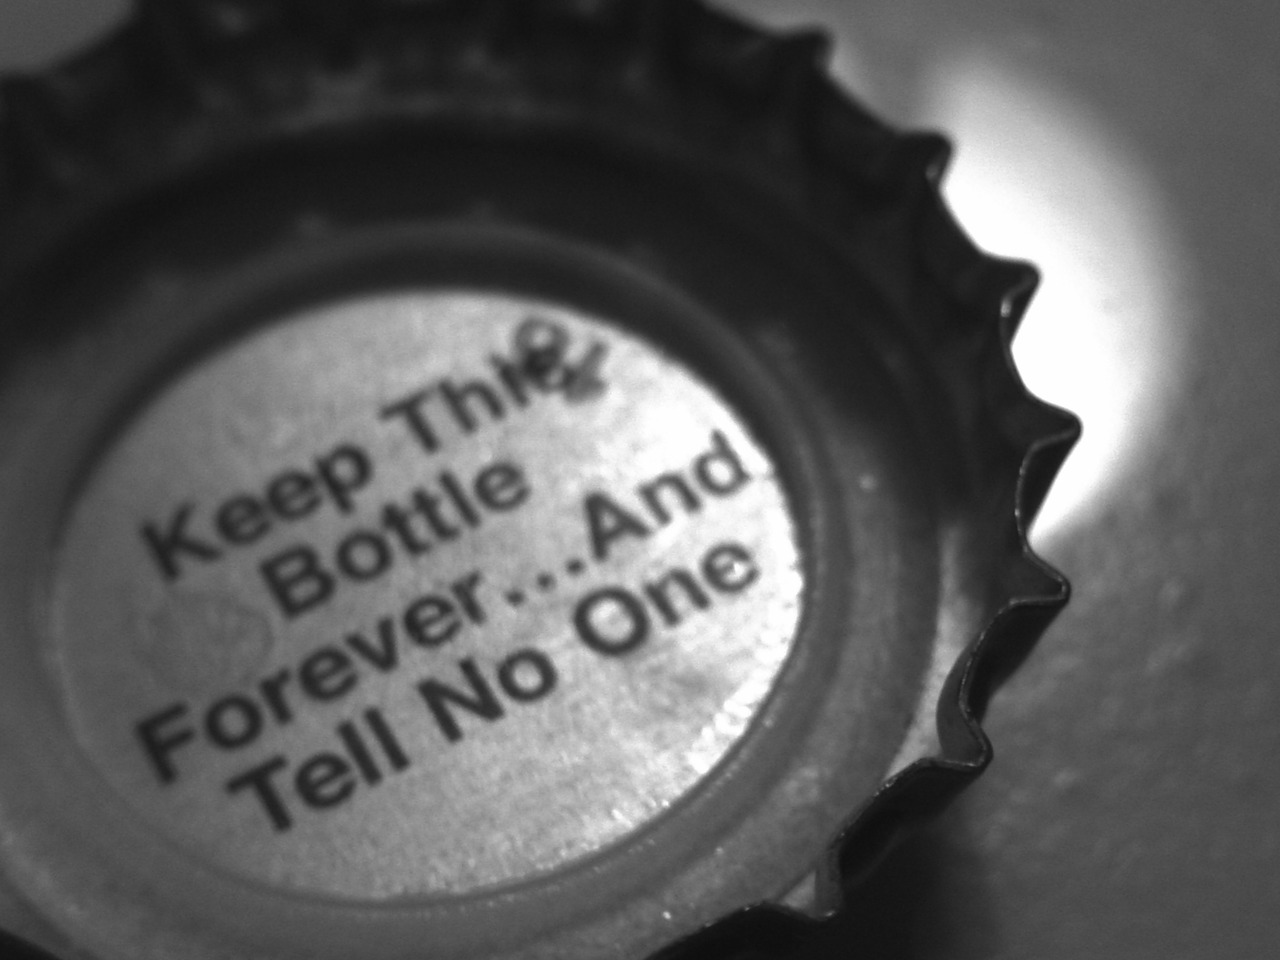 If I remember correctly this is a Seasonal Magic Hat bottle top.